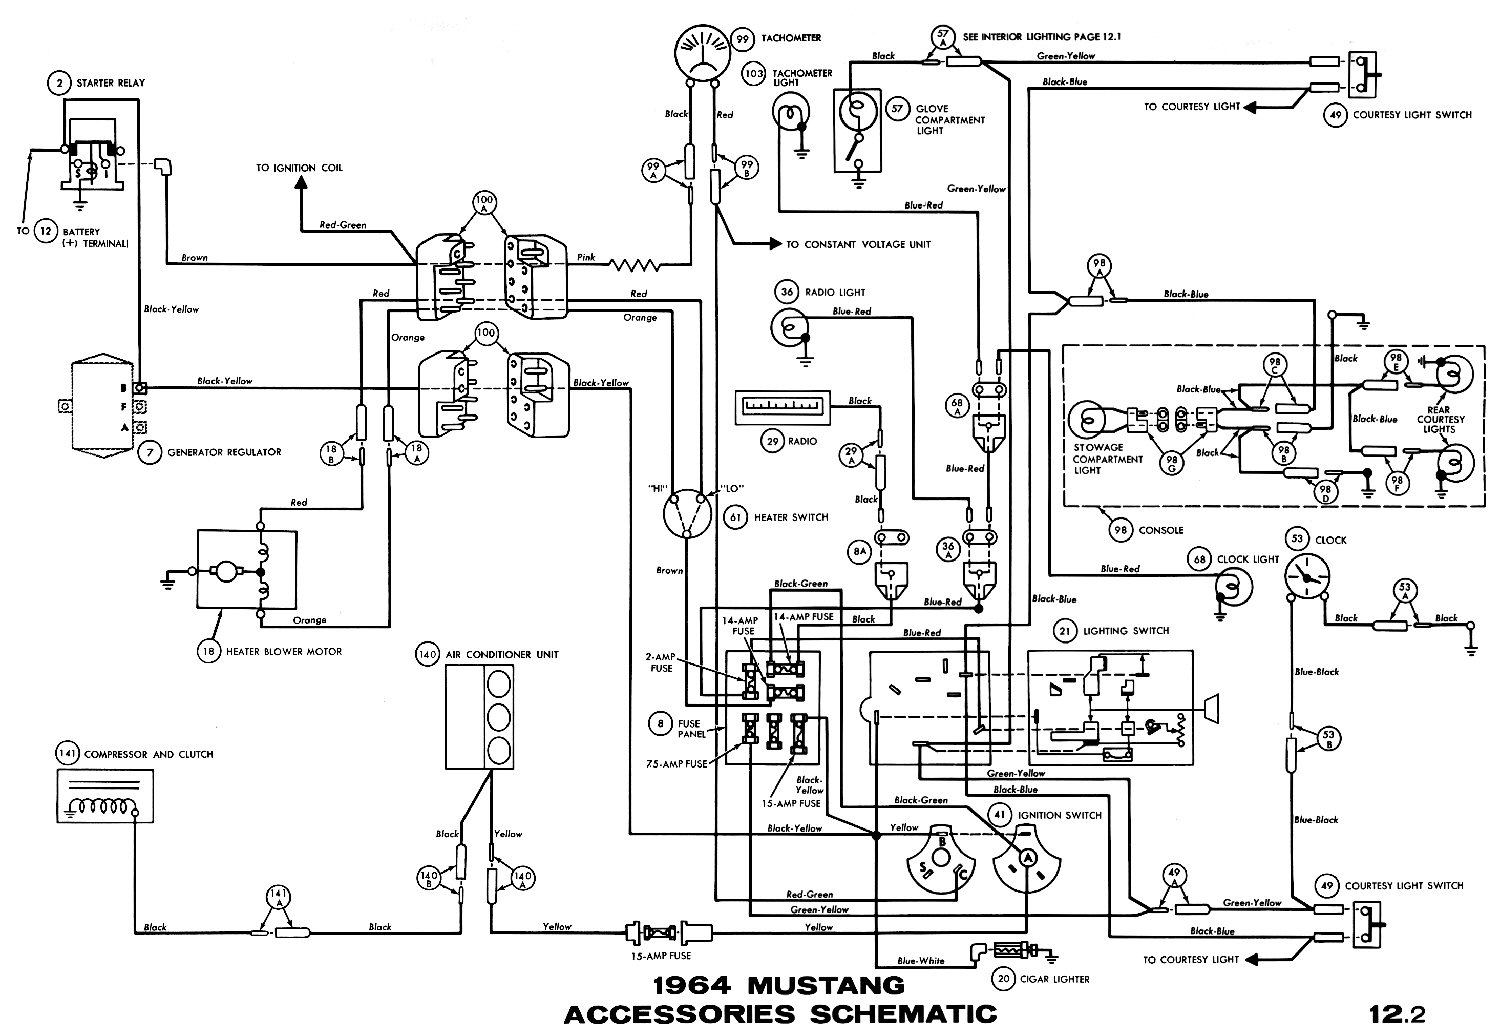 1964m 1964 mustang wiring diagrams average joe restoration 2013 ford wiring diagram at crackthecode.co